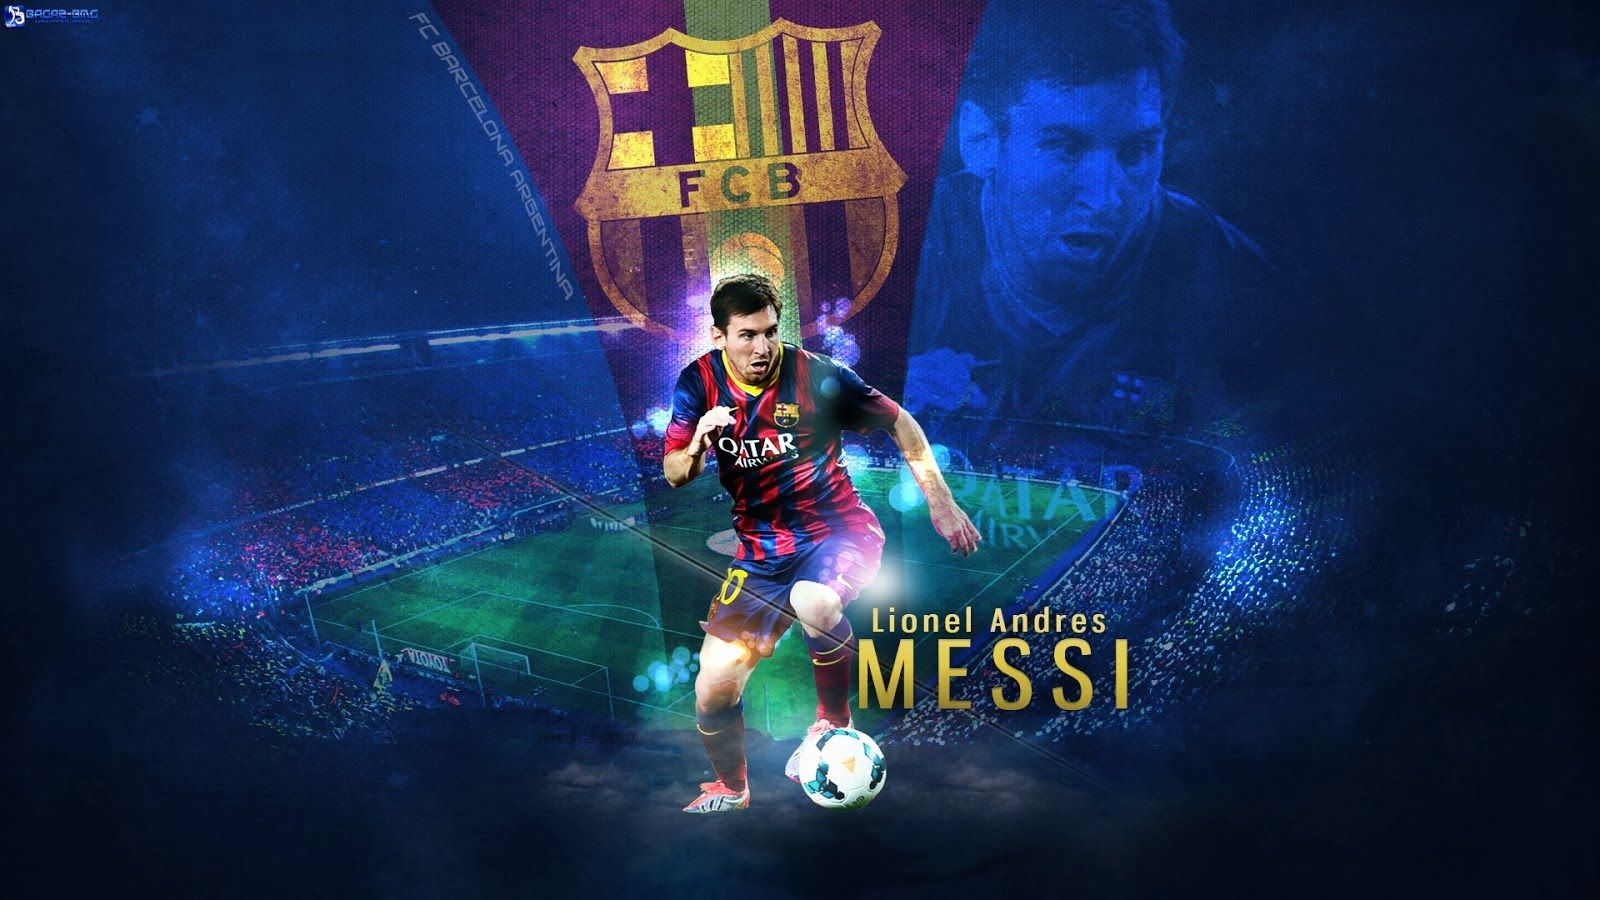 Lionel Messi 2014 Wallpaper Hd Pictures 4 HD Wallpapers amagico 1600x900